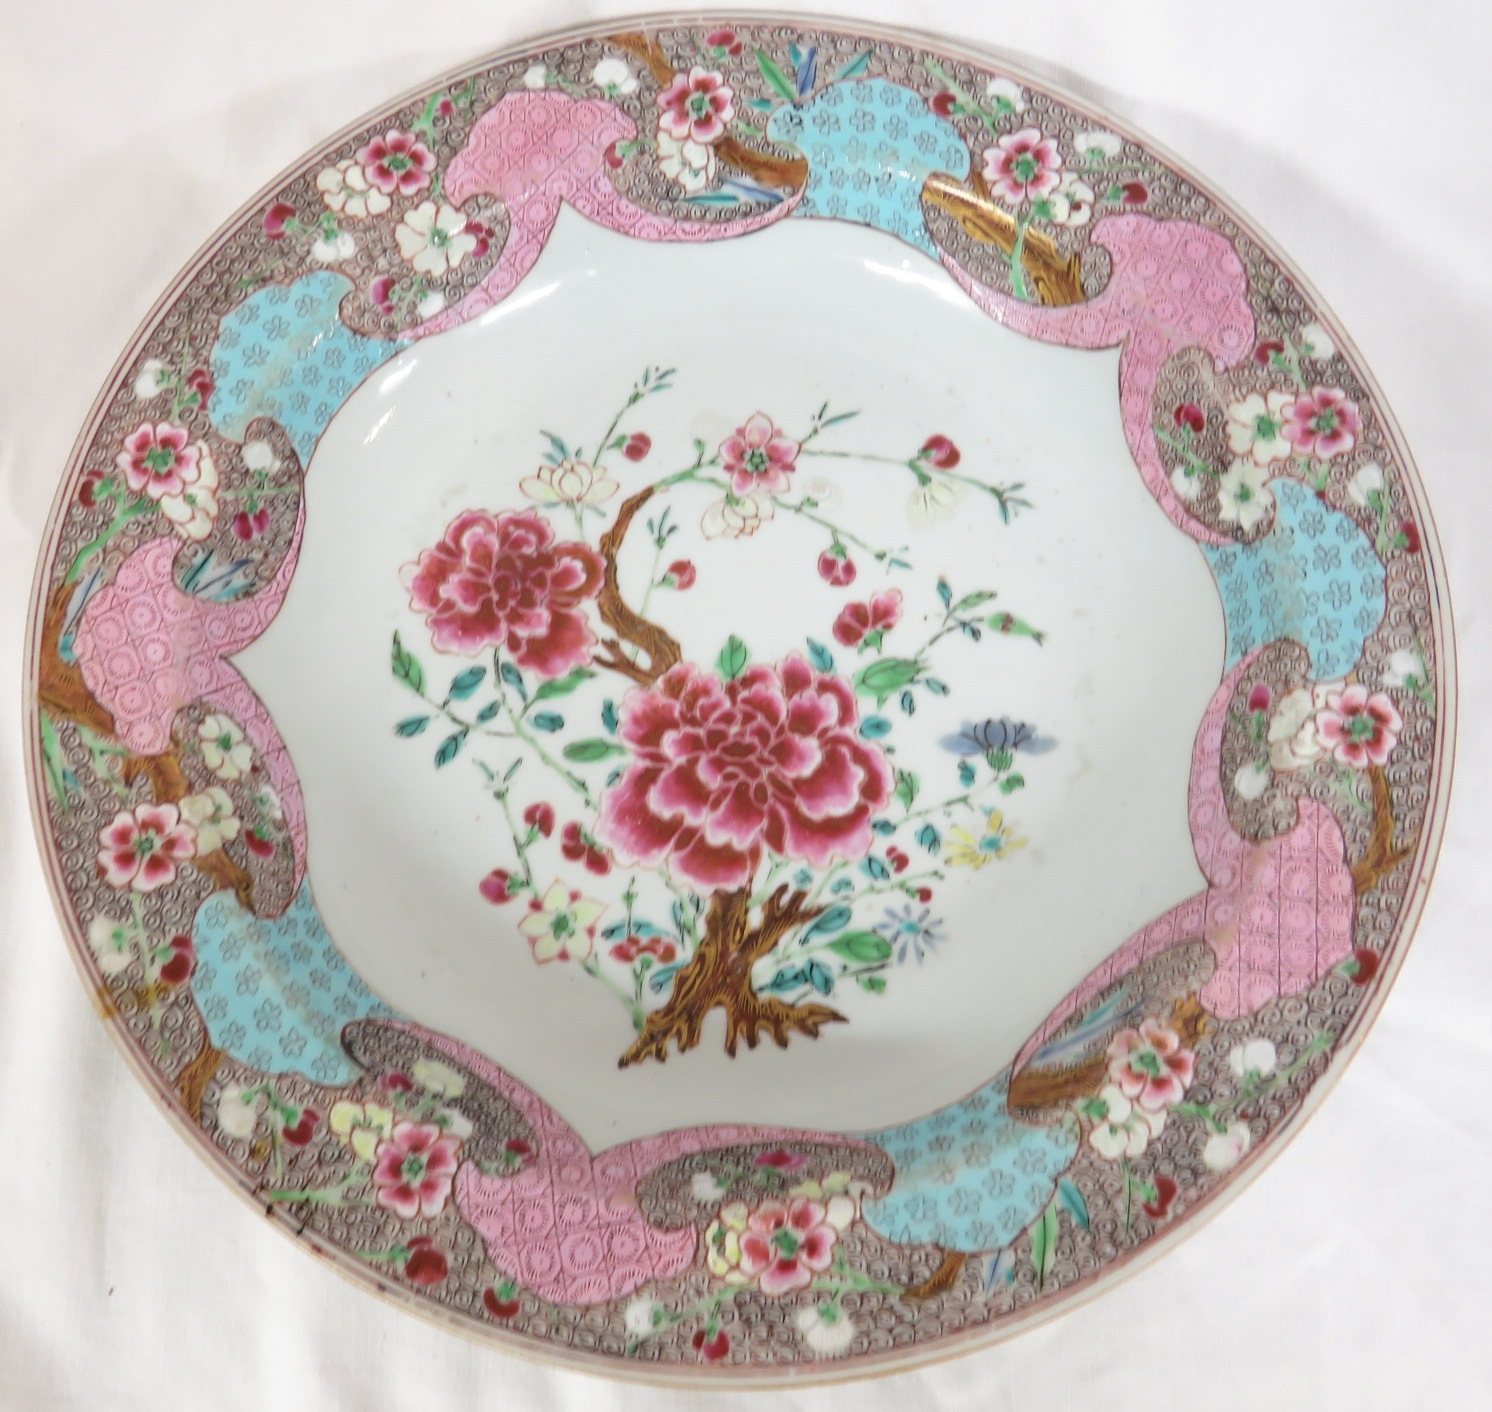 Lot 100 - Chinese porcelain famille rose dish, the central reserve enamelled with flowering branch, the border